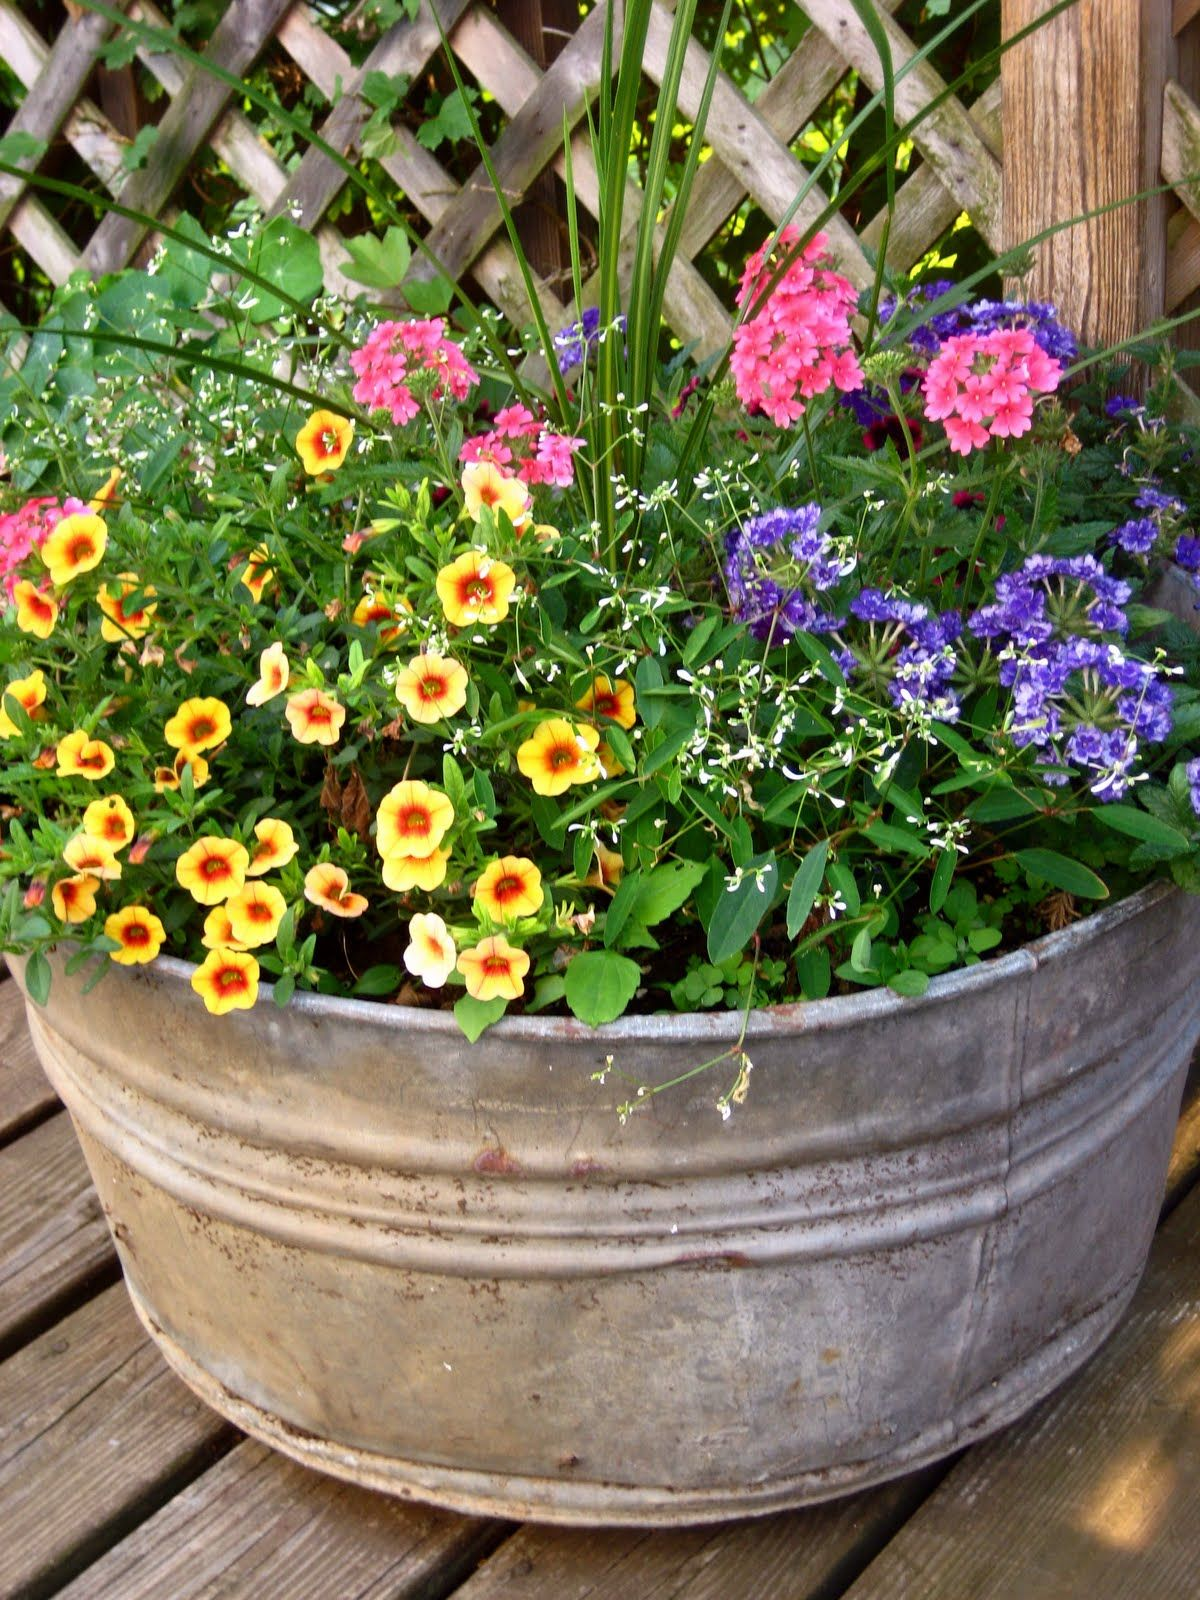 Container Planting Ideas     This Galvanized Old Pot Contains Four Types Of  Heat Tolerant Annuals Requiring Full Sun. I Used One Spike And Two Each Of  The ...